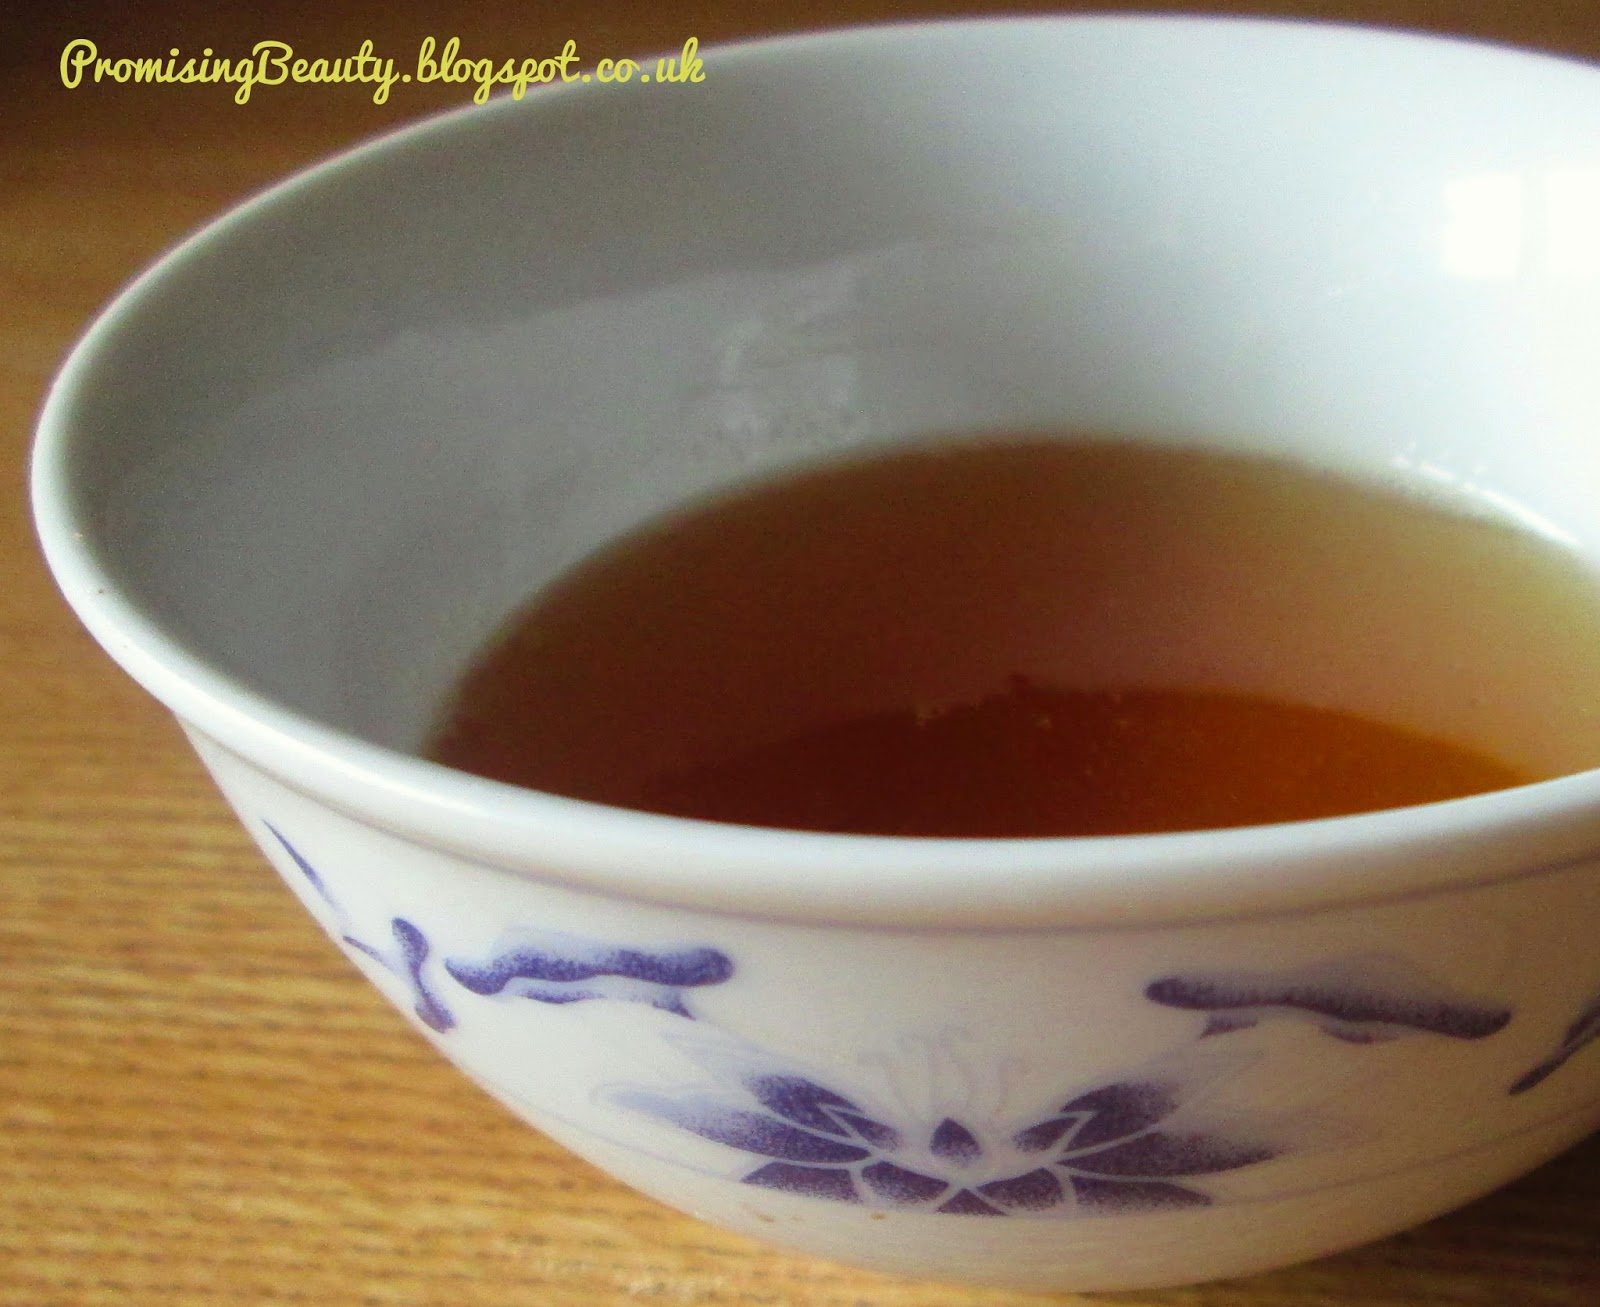 bowl of honey is small asian dipping bowl.